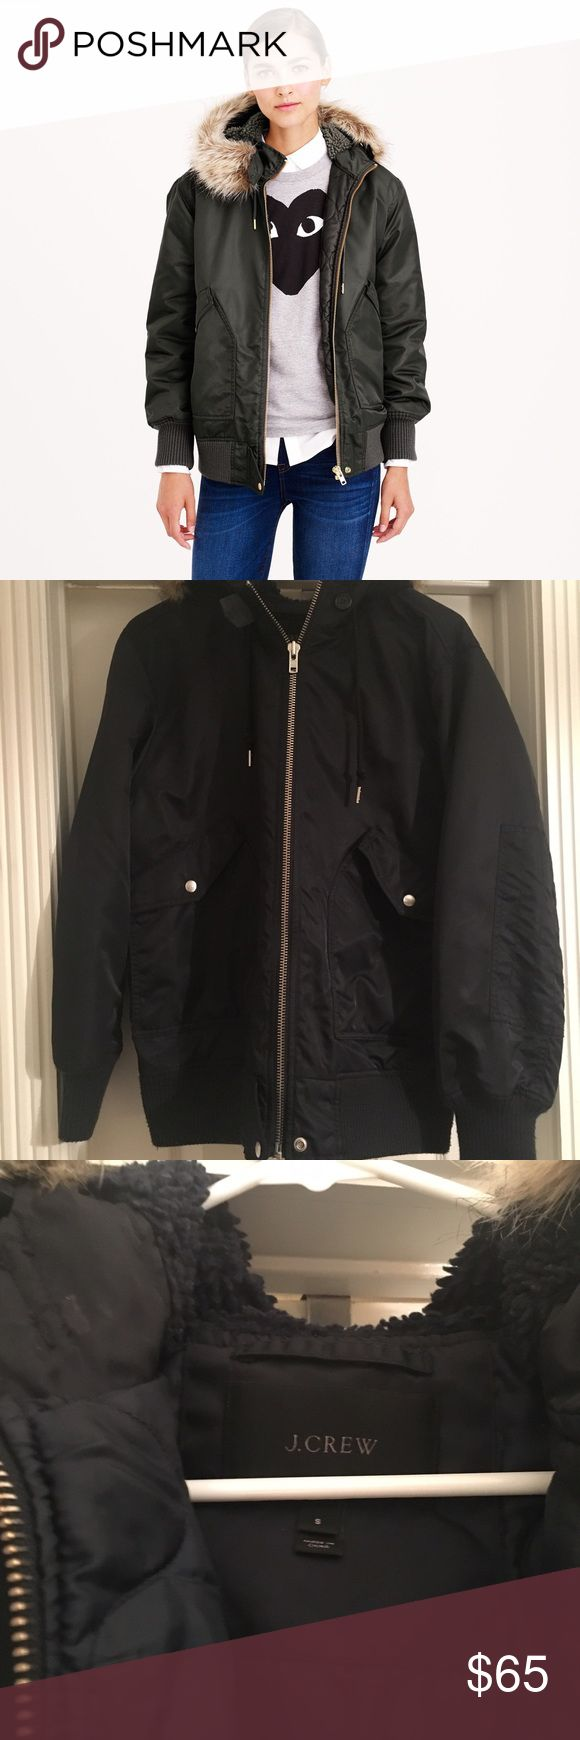 """J. Crew nylon hooded bomber jacket, navy size S Great coat in excellent condition, no visible flaws. Great for warm weather, water resistant. It has an oversized look. Size small, fits like a medium. Would look best on someone taller that 5'4"""". Very high quality bomber jacket. Navy color, detachable fur lining on the hood. J. Crew Jackets & Coats"""